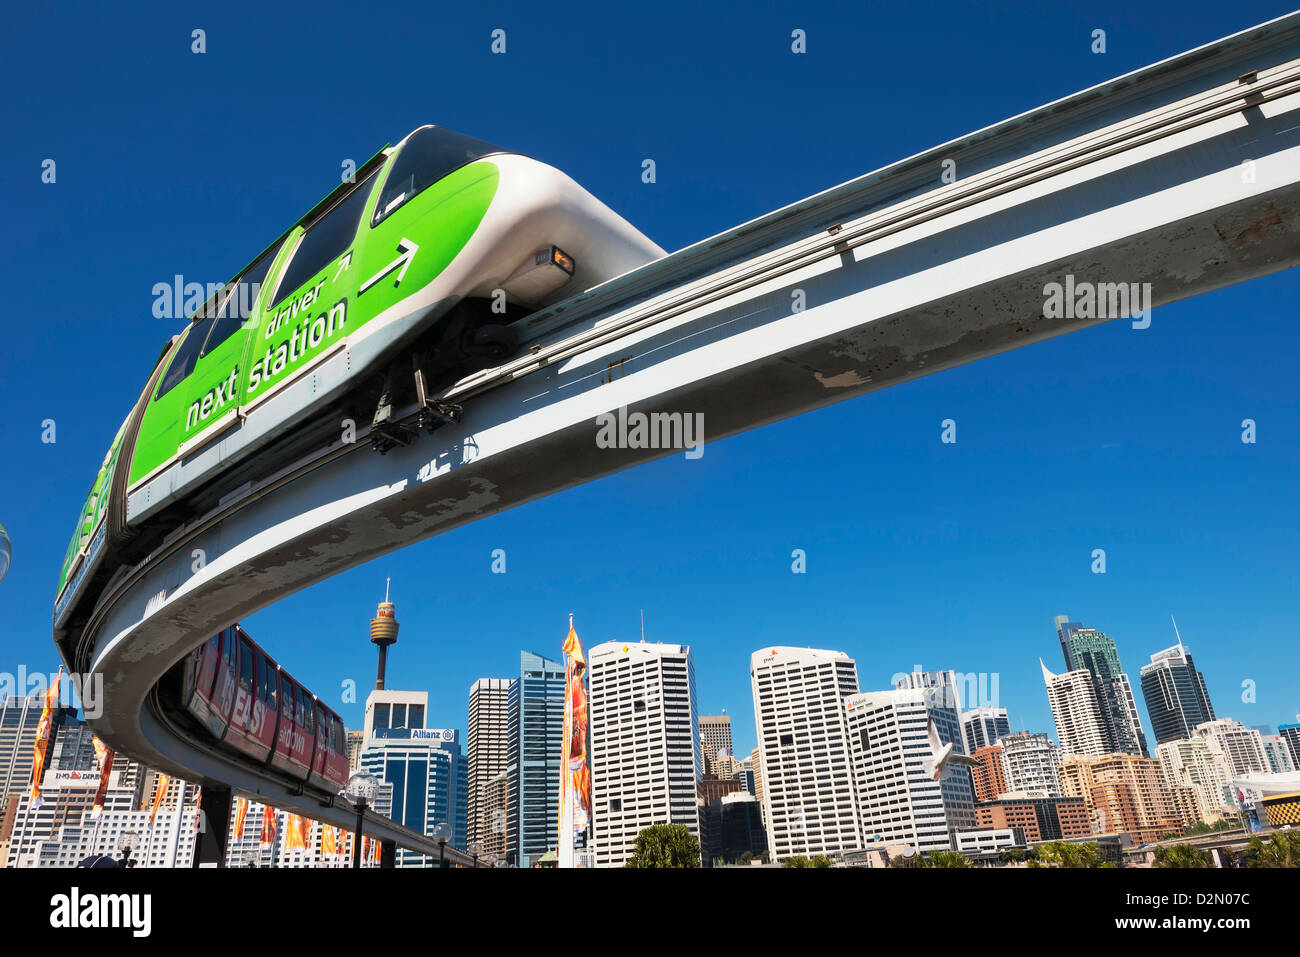 Monorail en Darling Harbour, Sydney, New South Wales, Australia, el Pacífico Imagen De Stock